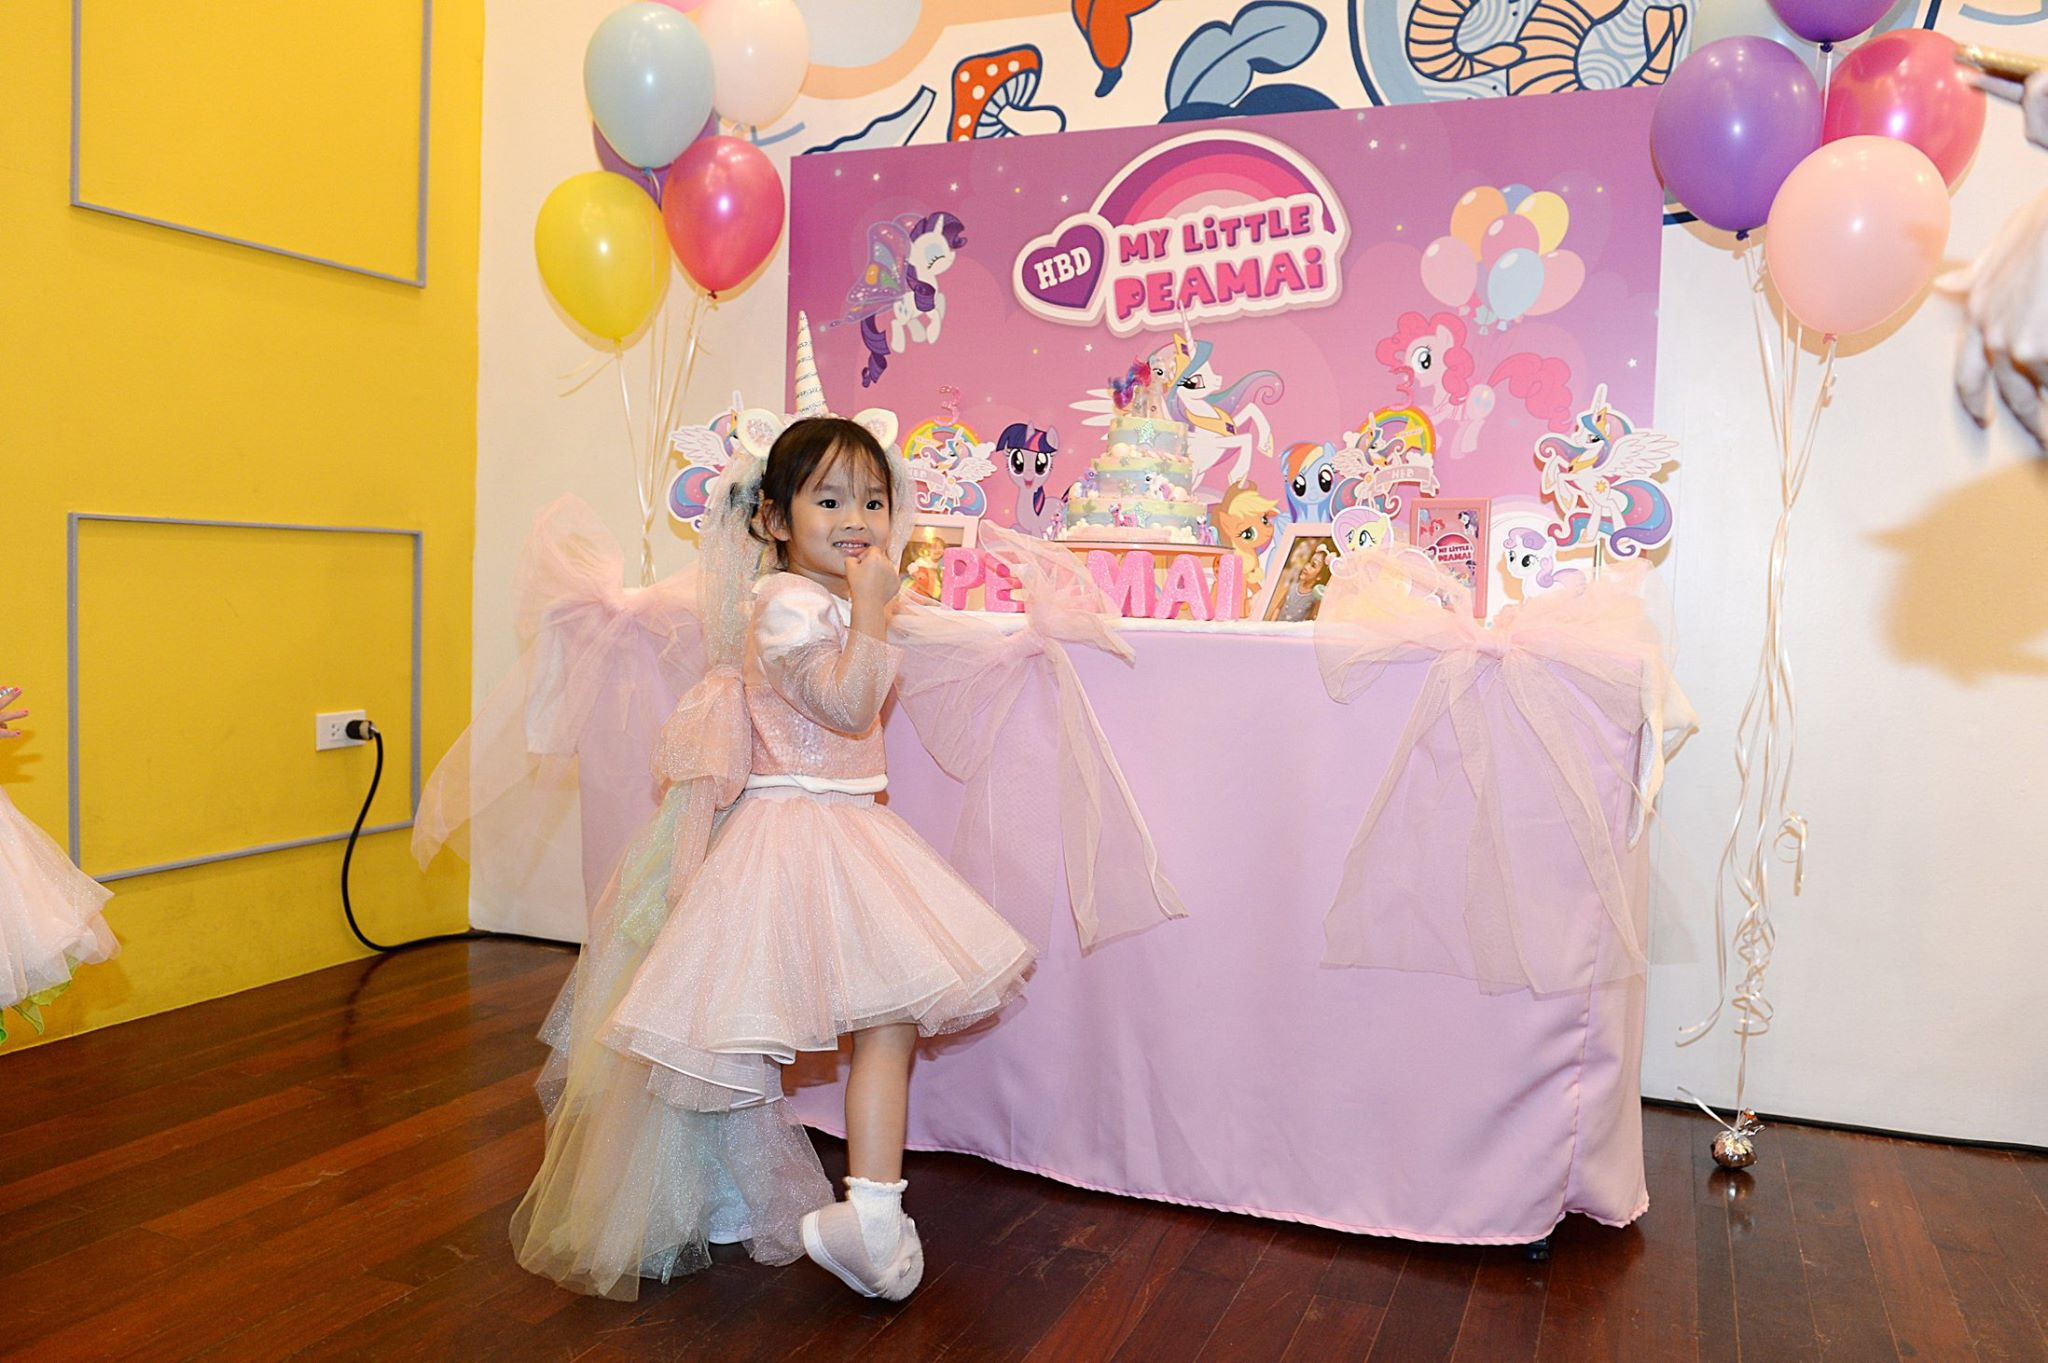 Thai actress, Aff Taksaorn's daughter, Peamai's birthday party in My Little Pony theme. We plan the birthday party, decorate the party, balloons, backdrop, cake table to make the party super cute